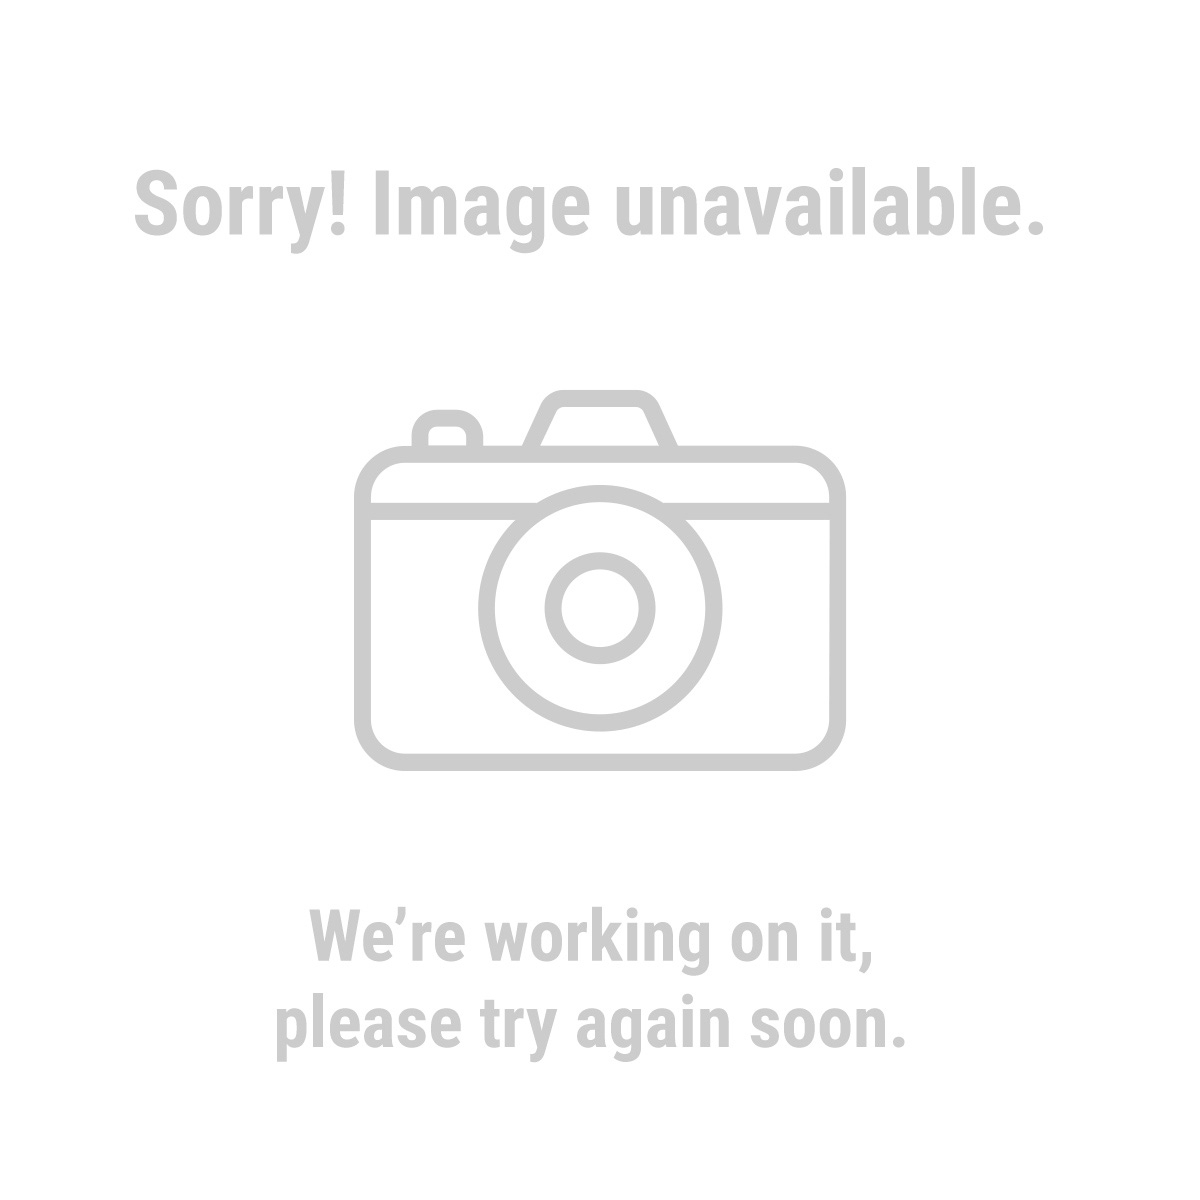 U.S. General 95853 10 Piece Bearing Race and Seal Driver Set